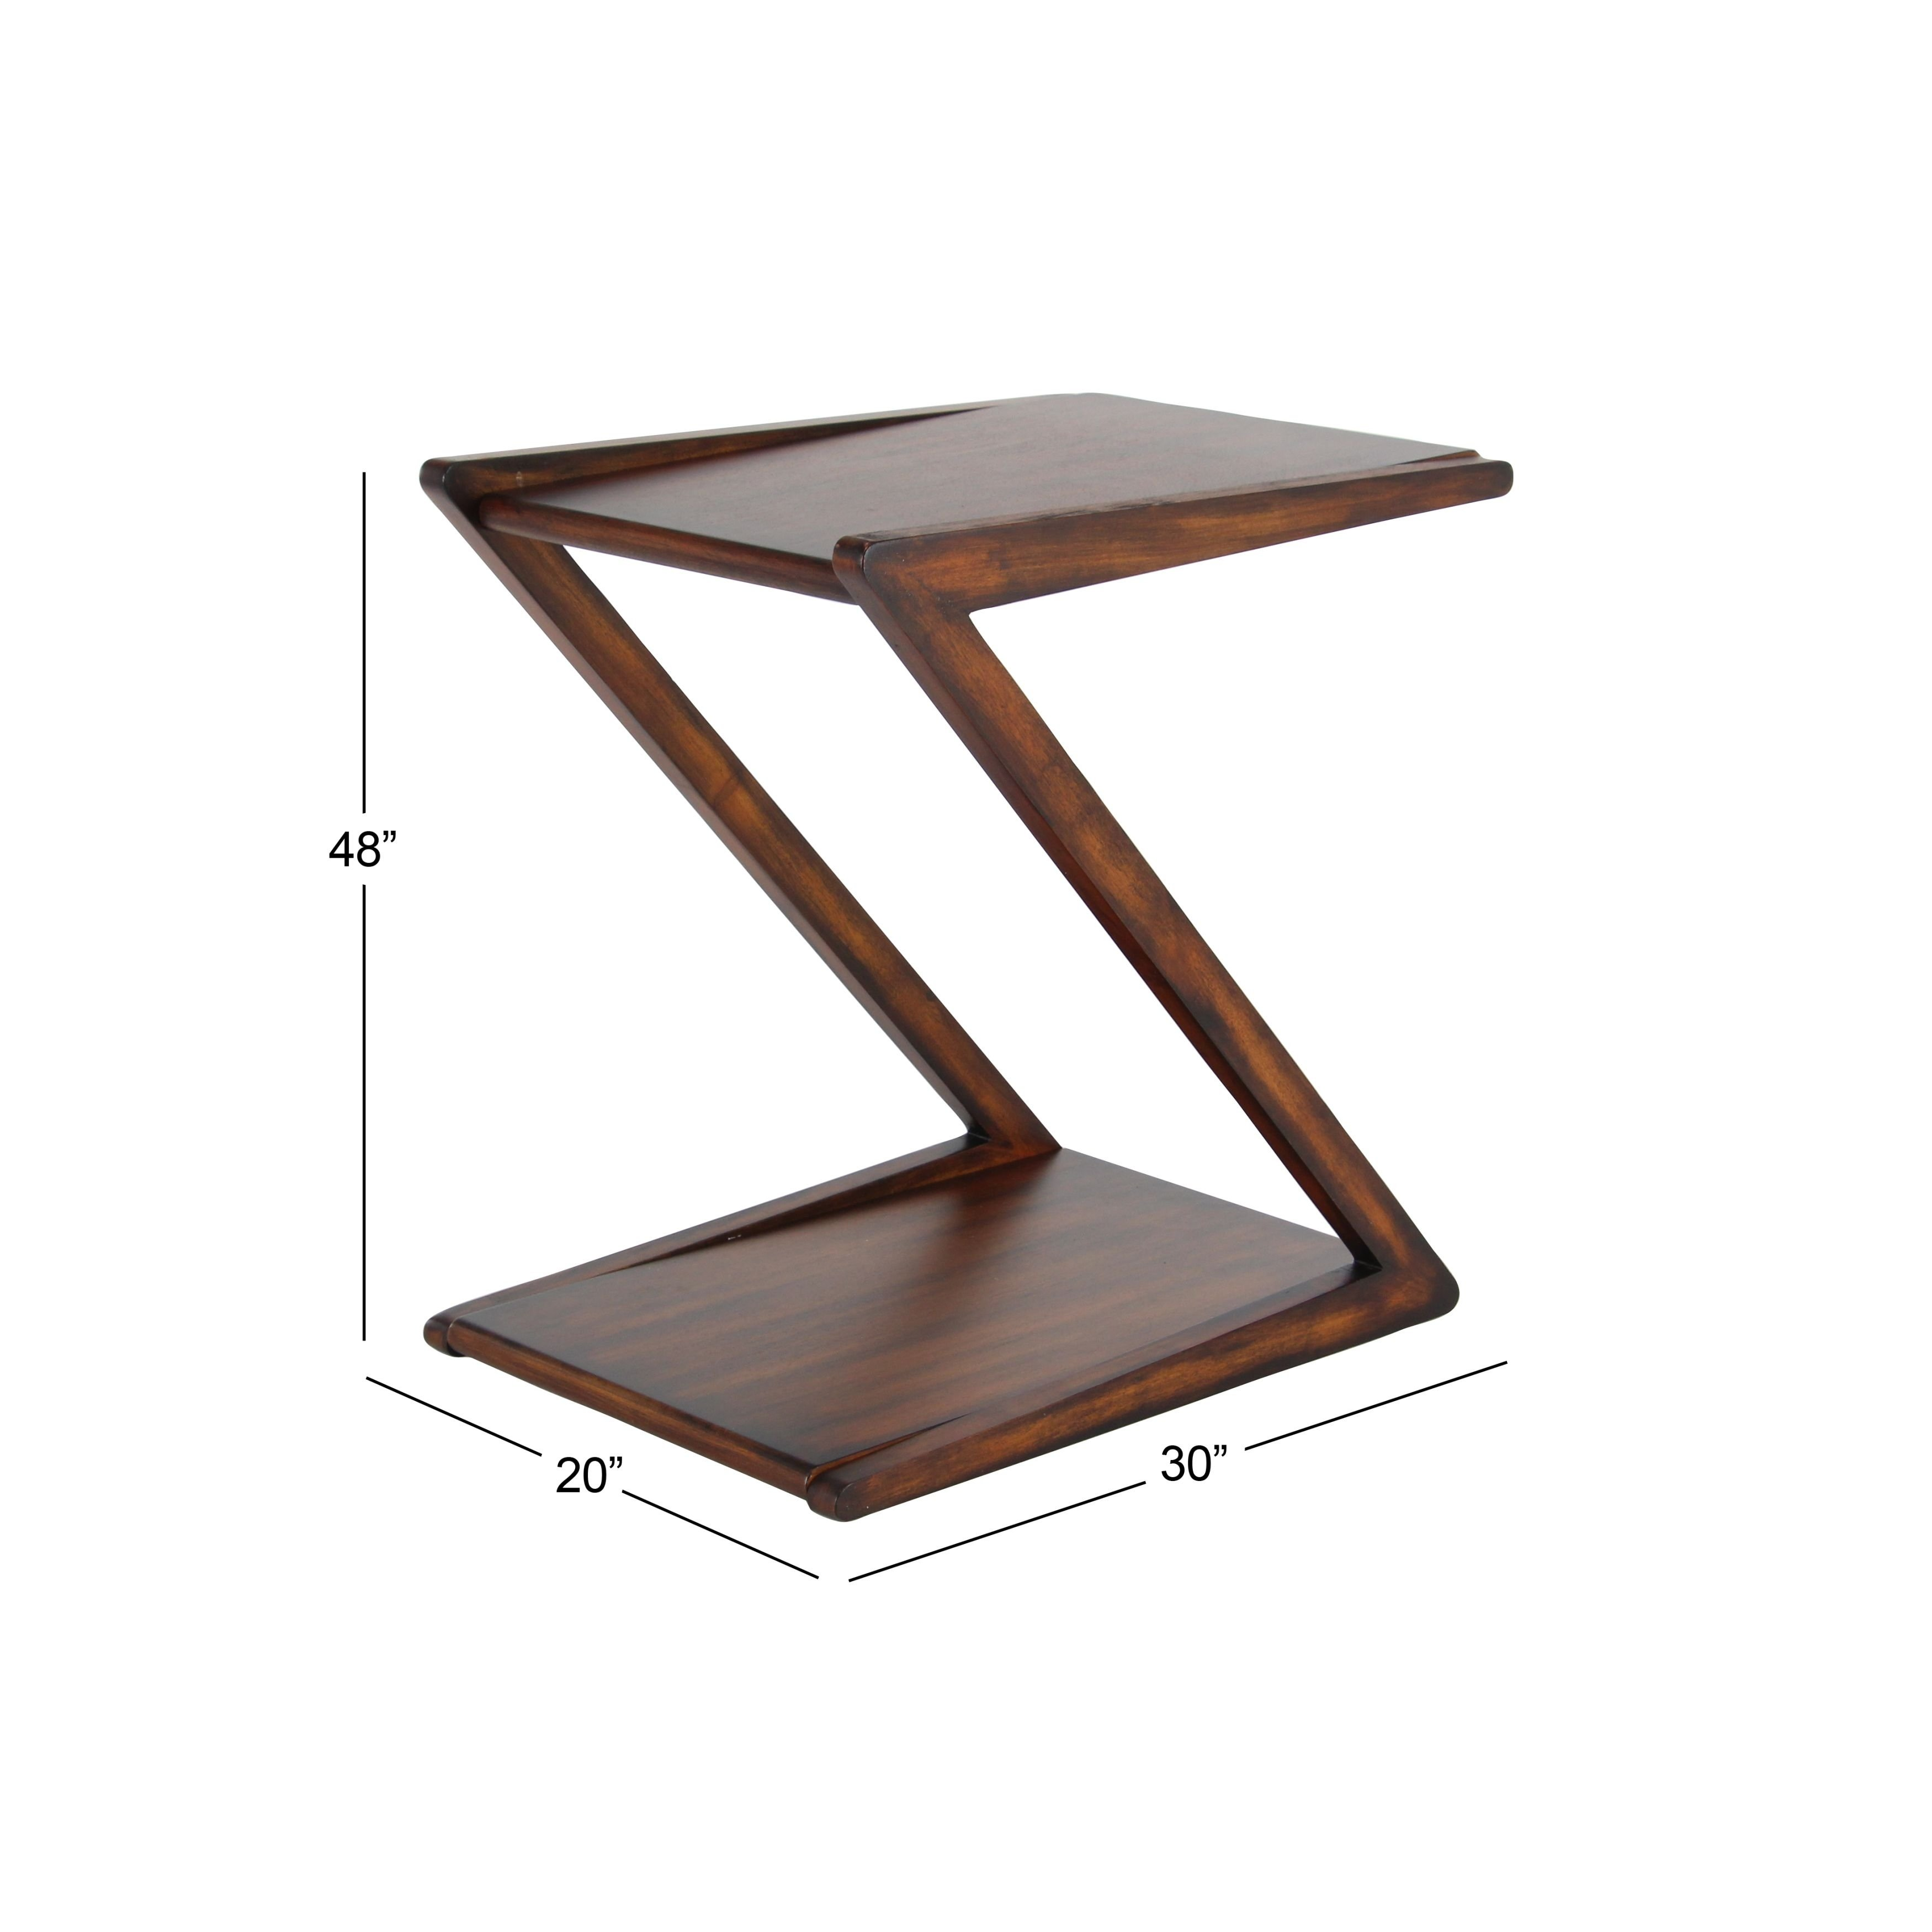 modern inch shaped brown wooden accent table studio free shipping today glass kitchen unfinished furniture console small round patio meyda tiffany lamps black and chairs gold